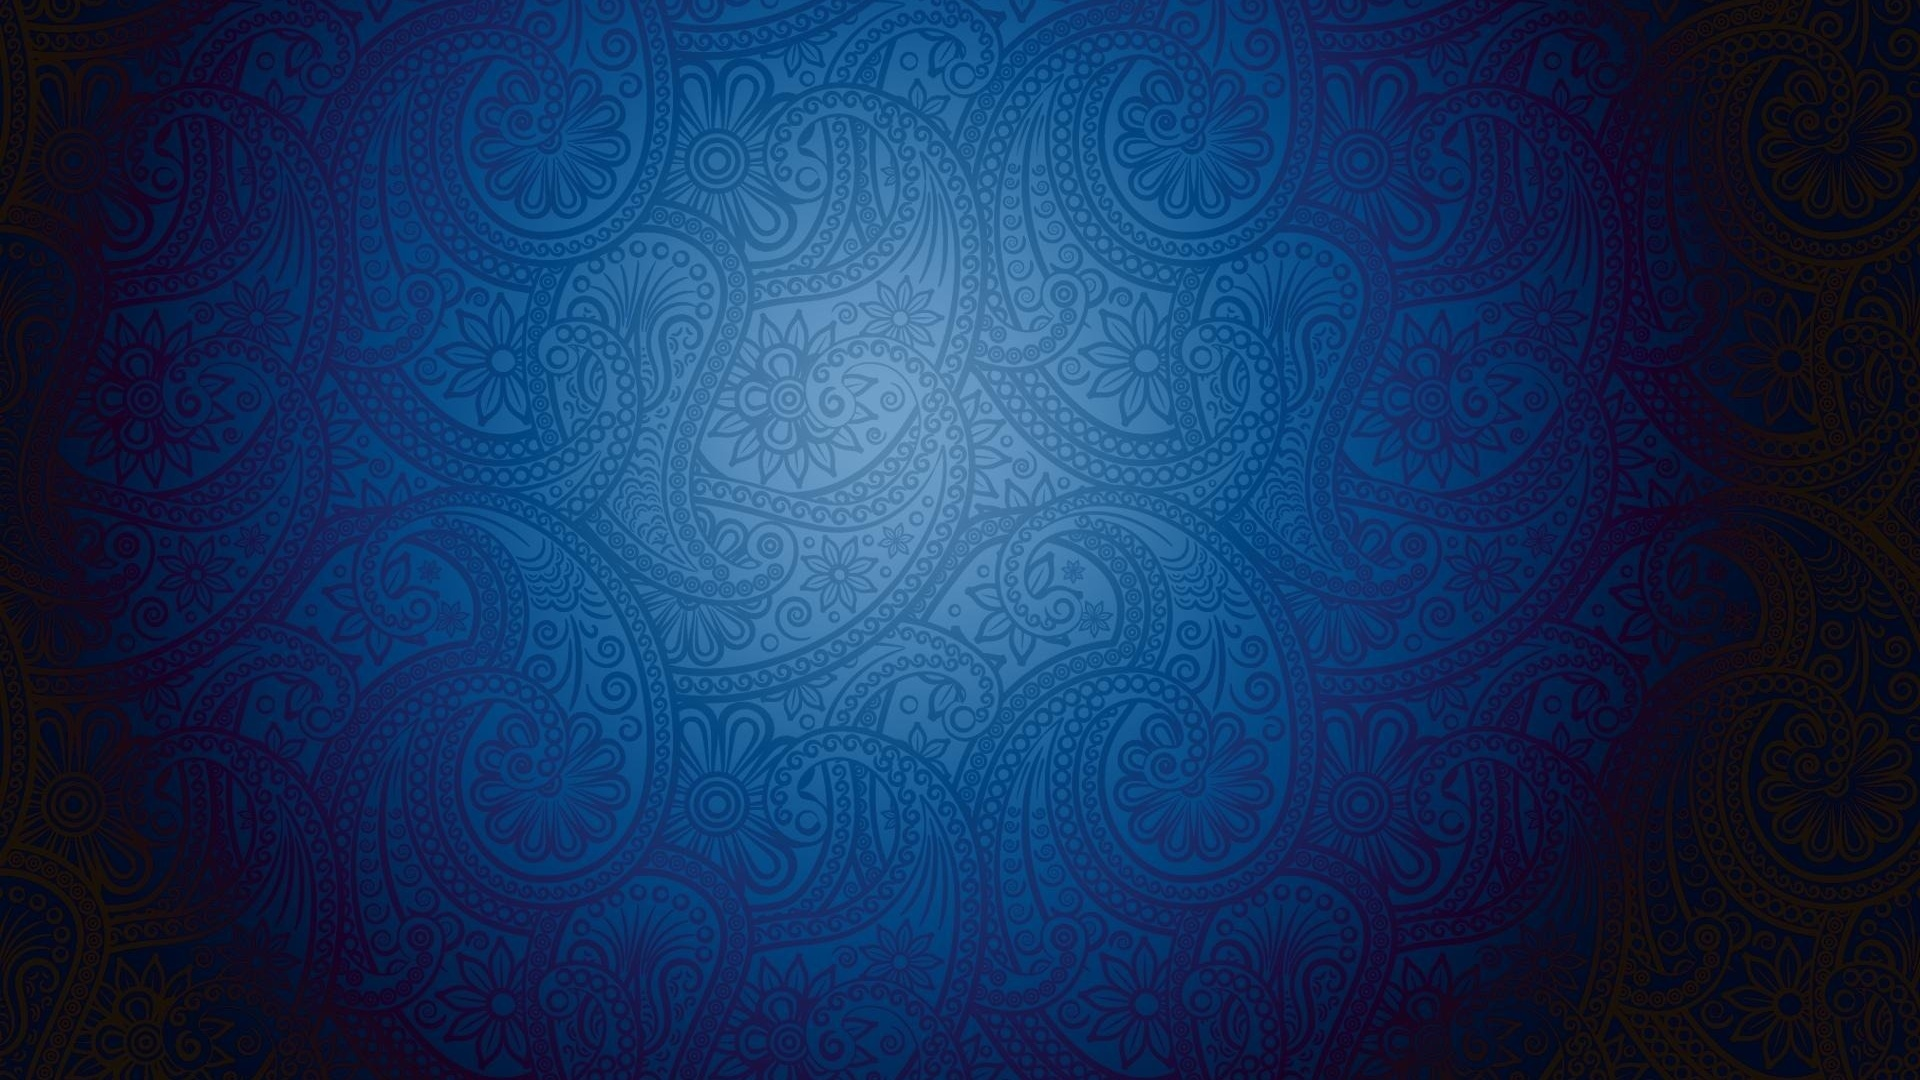 Background Hd Png